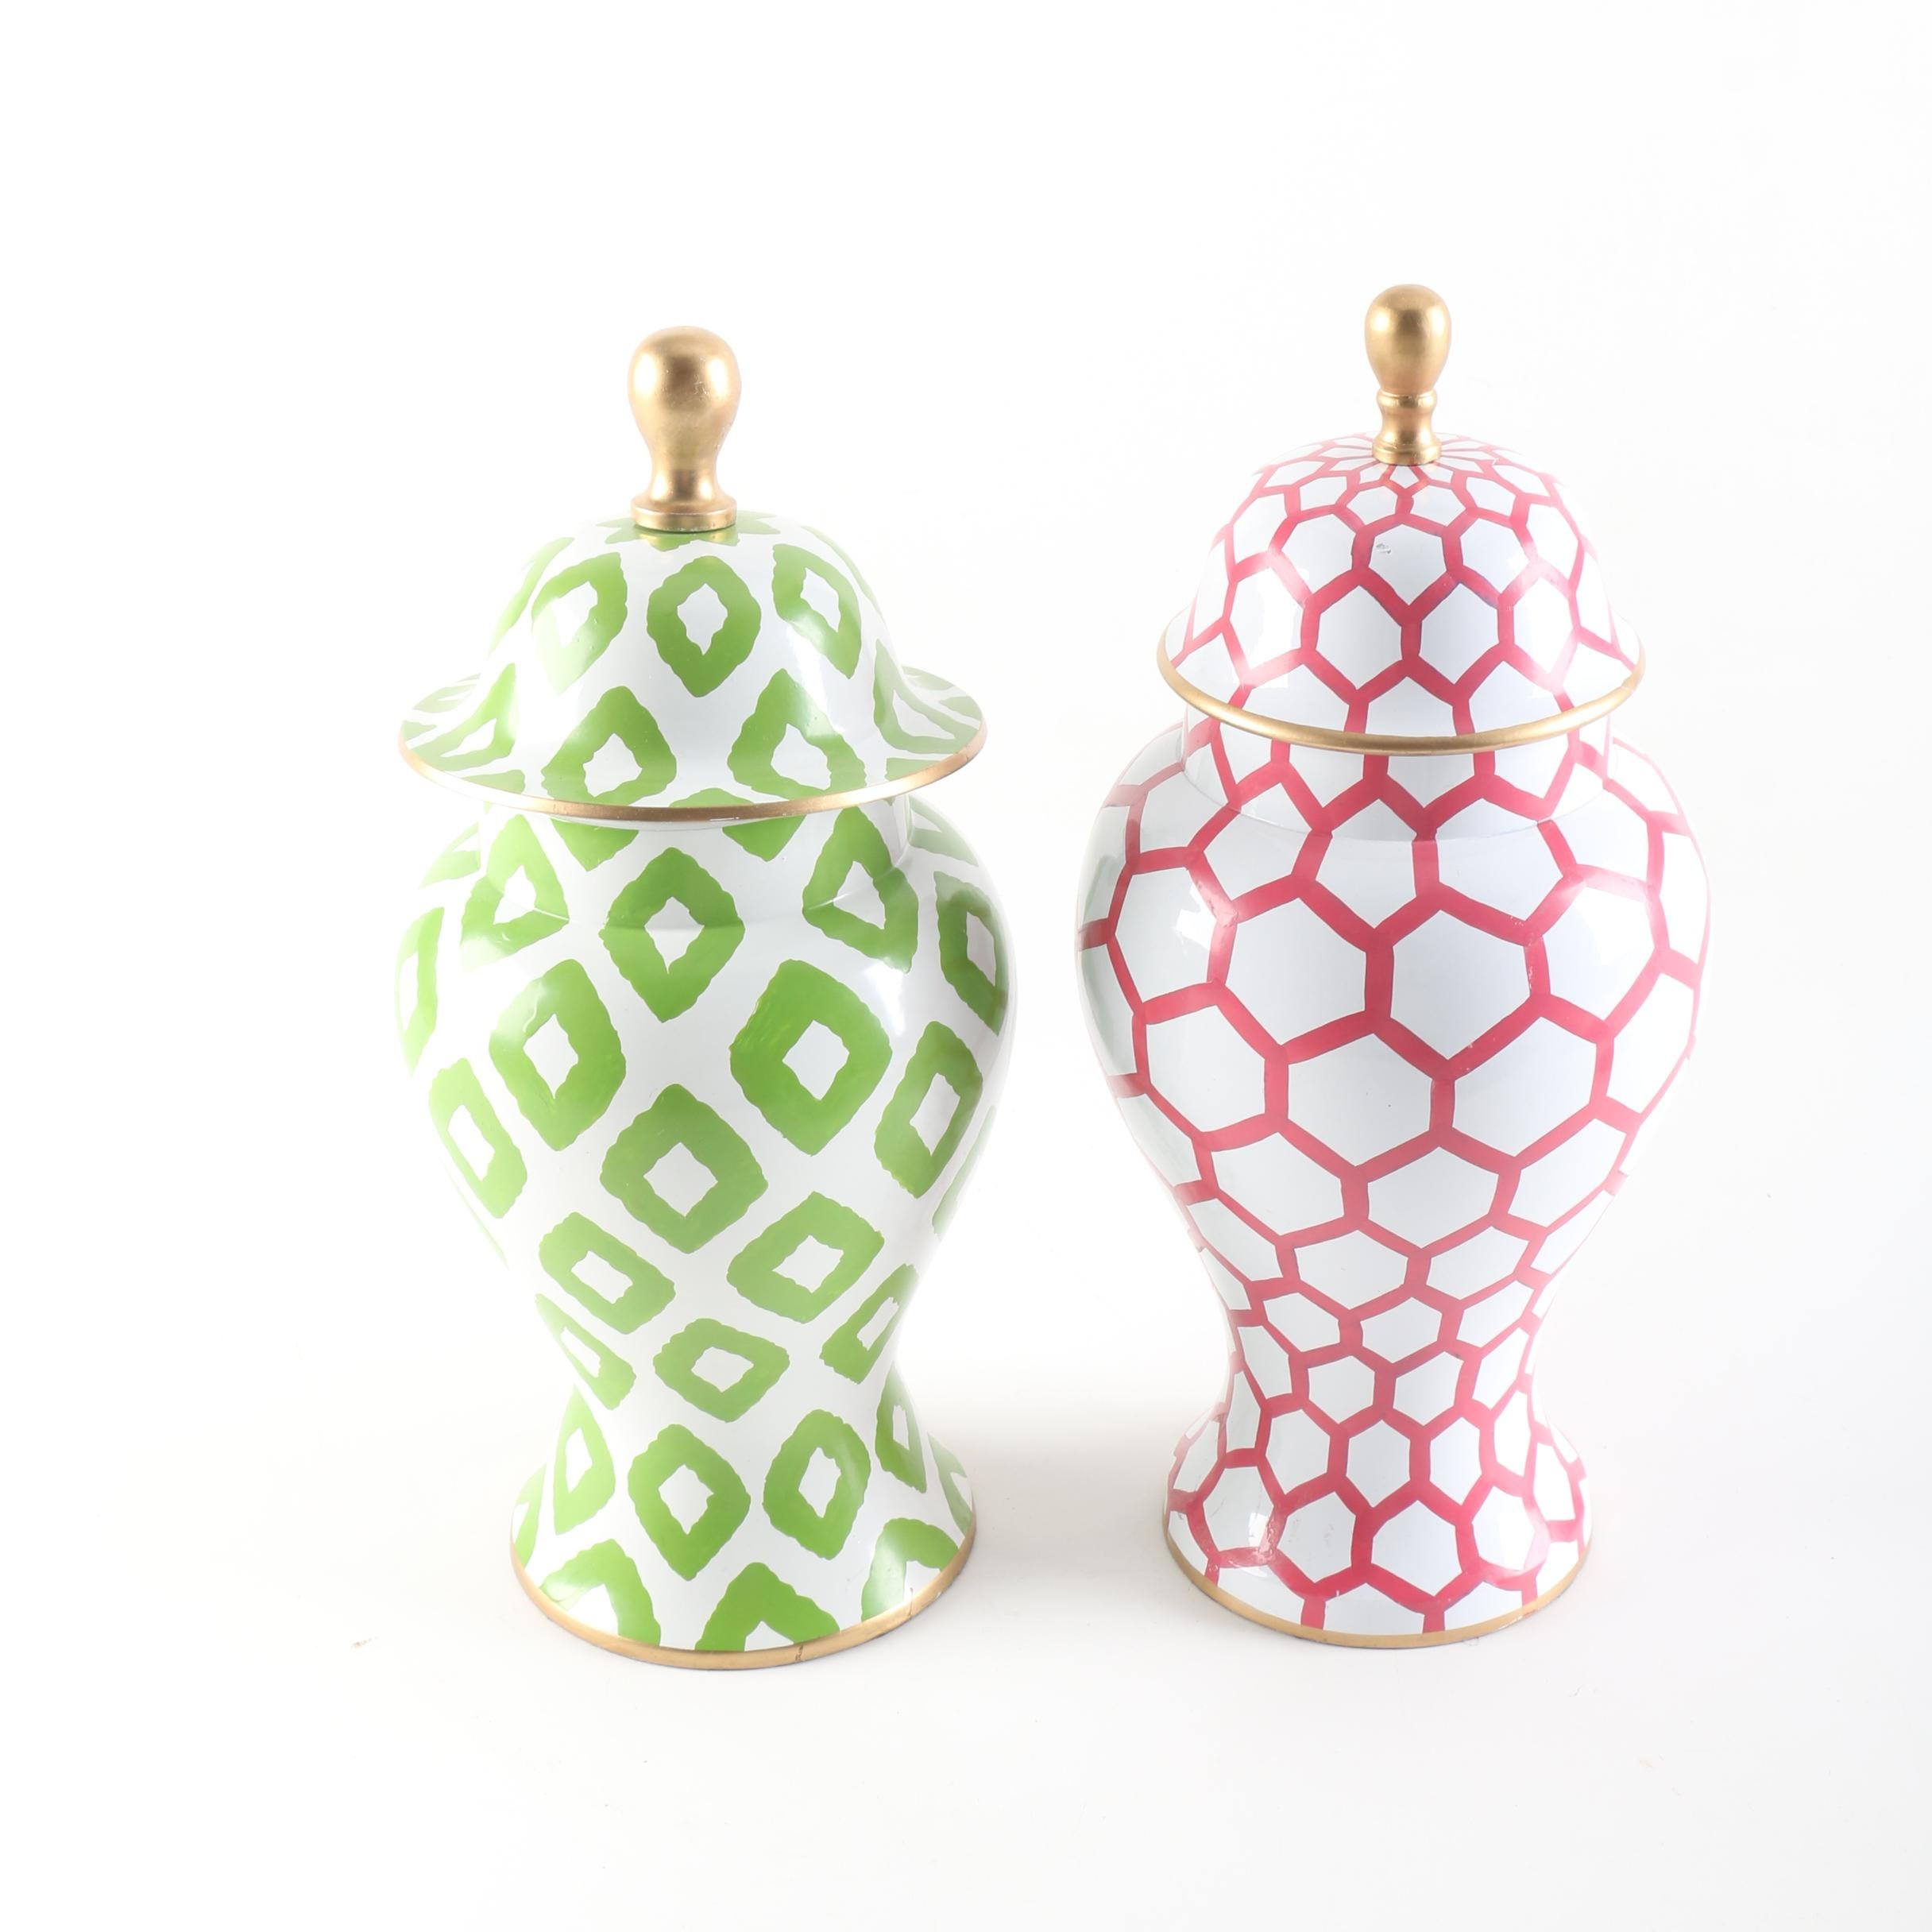 Green and Pink Metal Urns